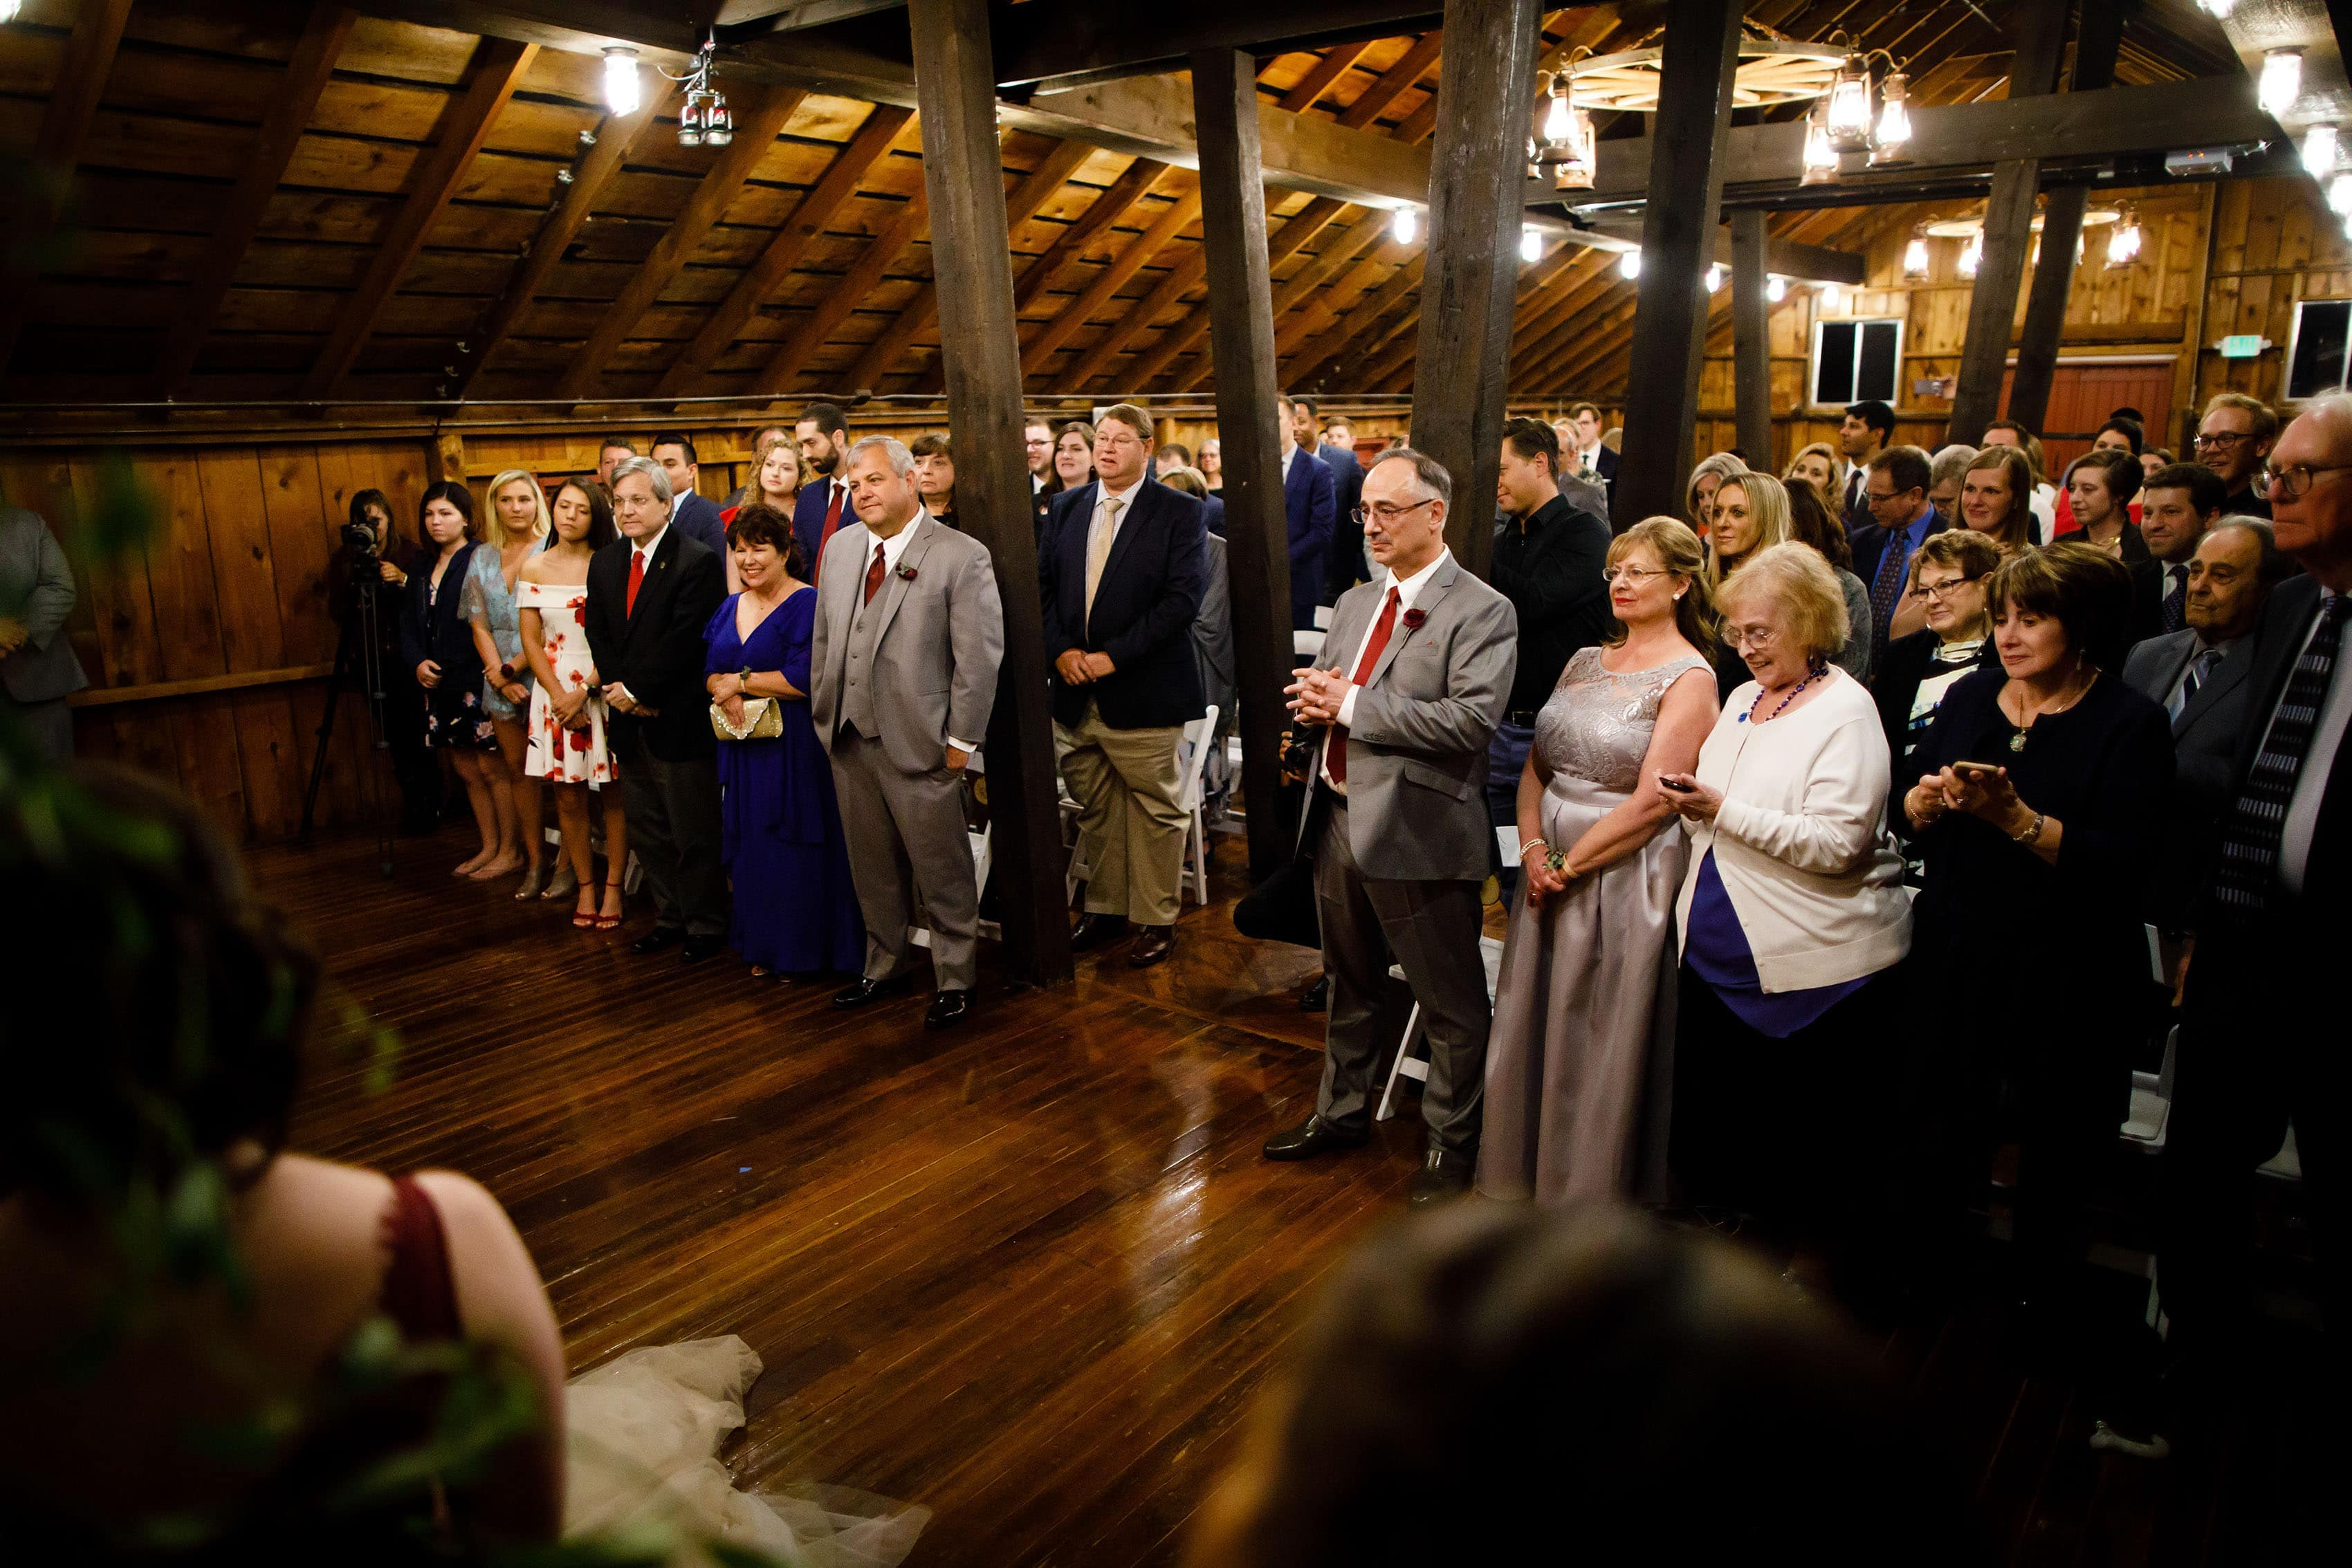 Guests watch a ceremony in Lola's Loft at Crooked Willow Farms